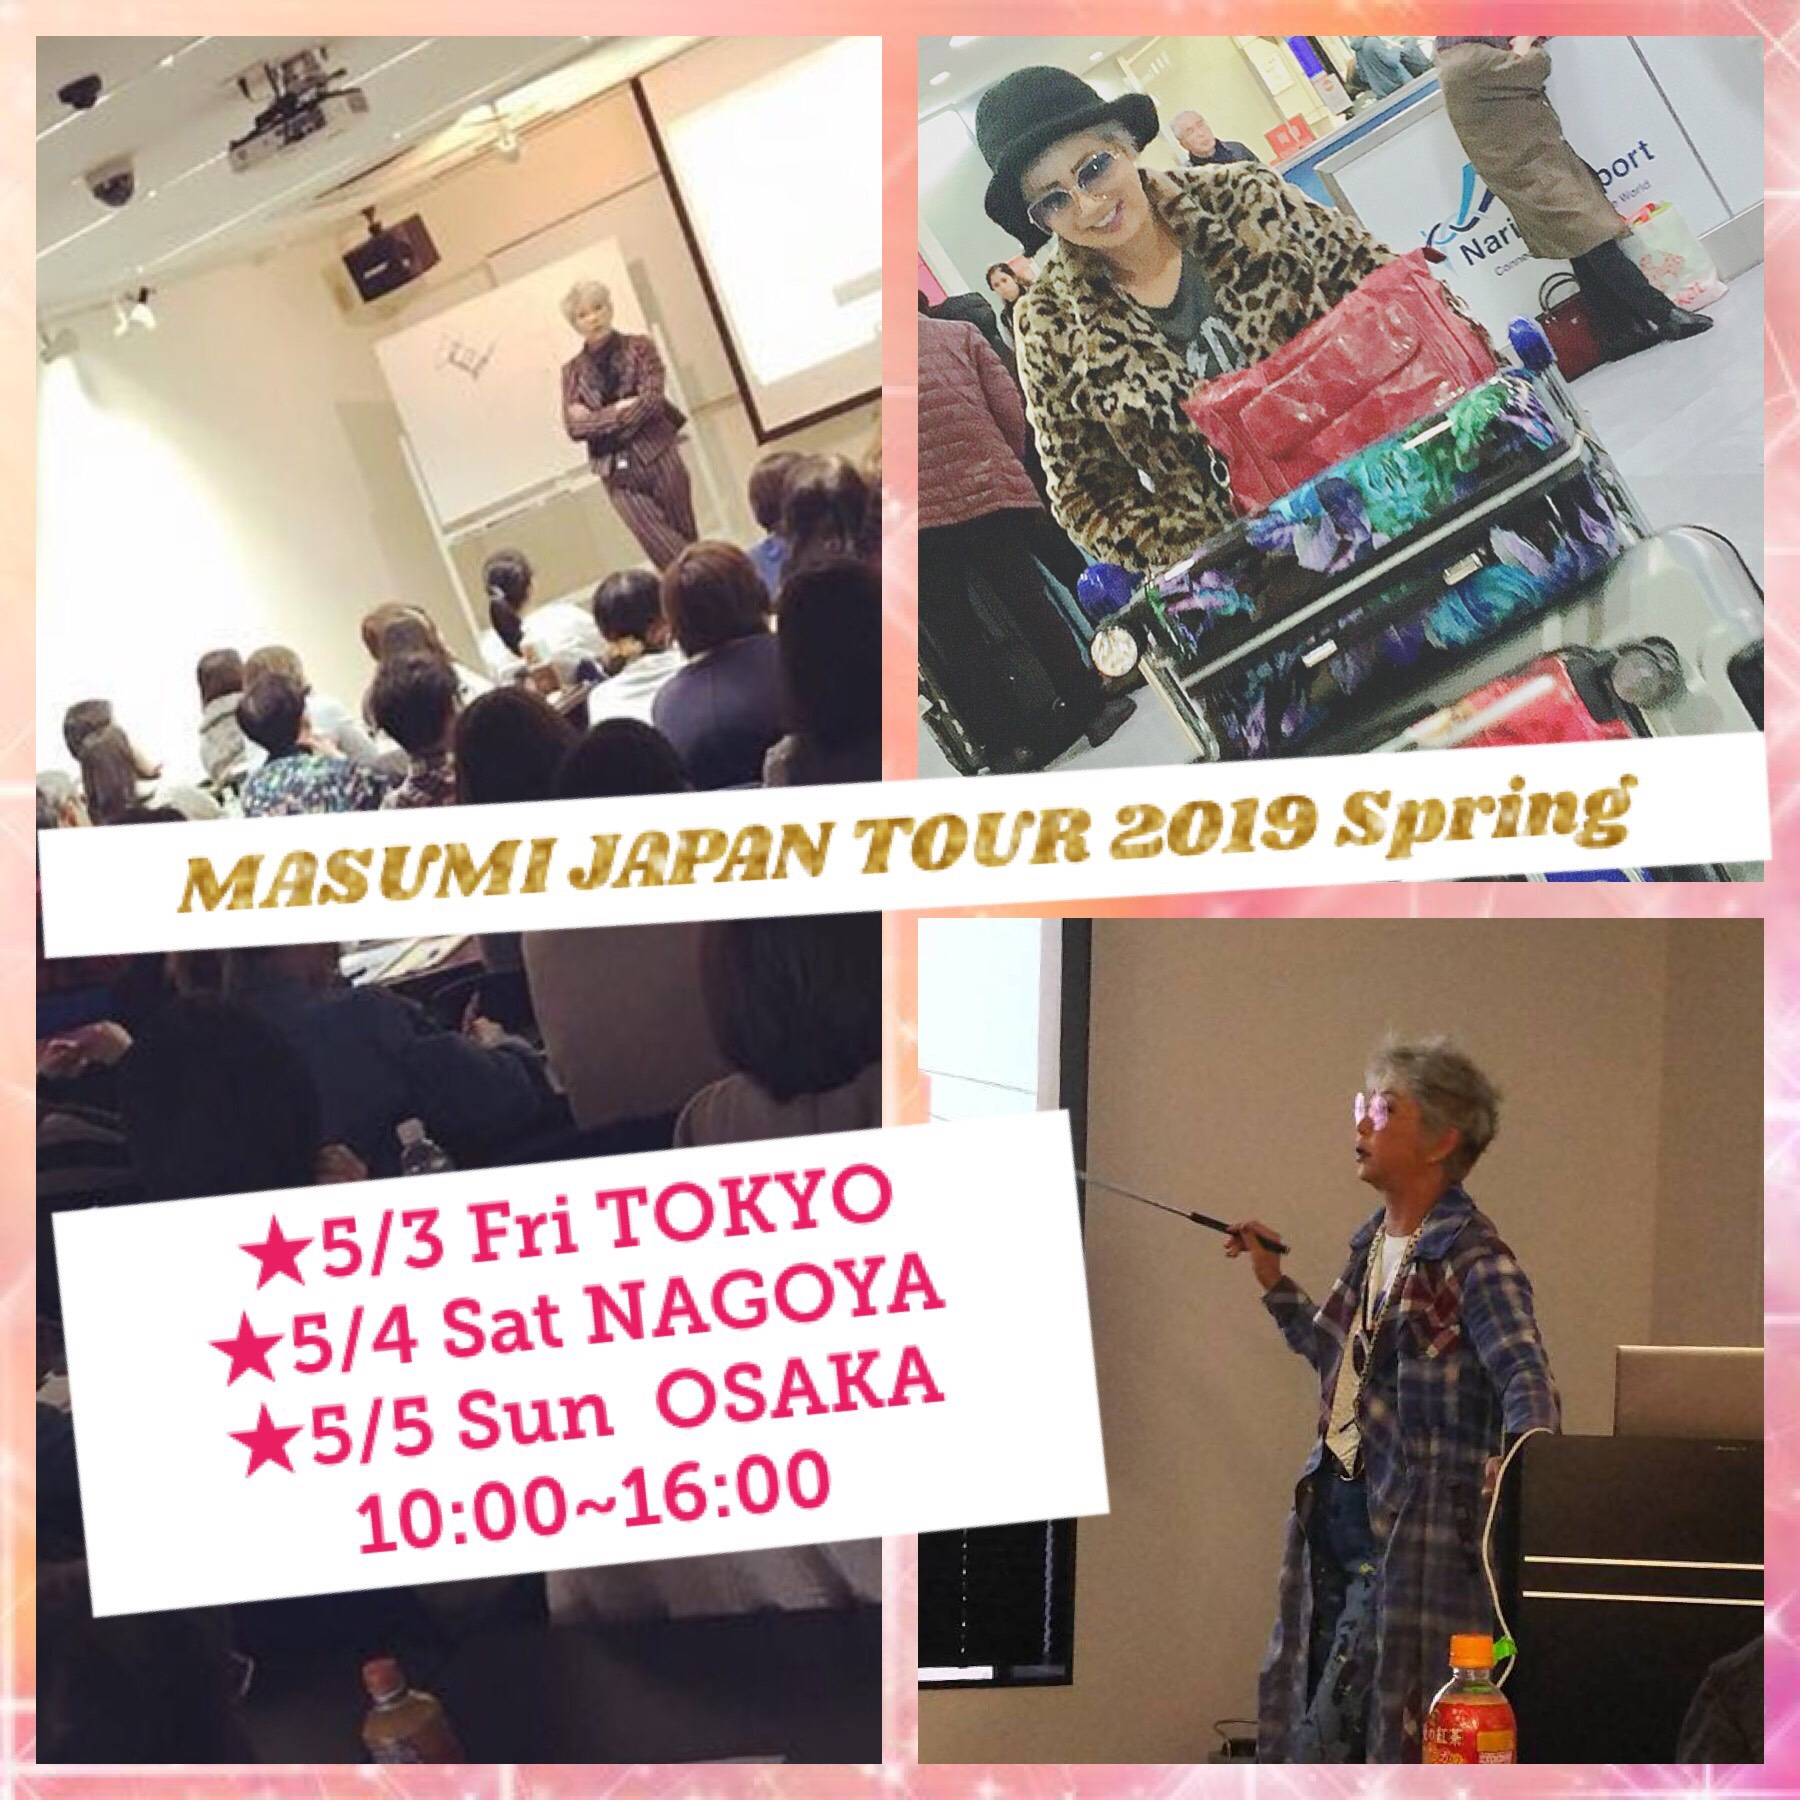 MASUMI JAPAN TOUR 2019 SPRING のお知らせ